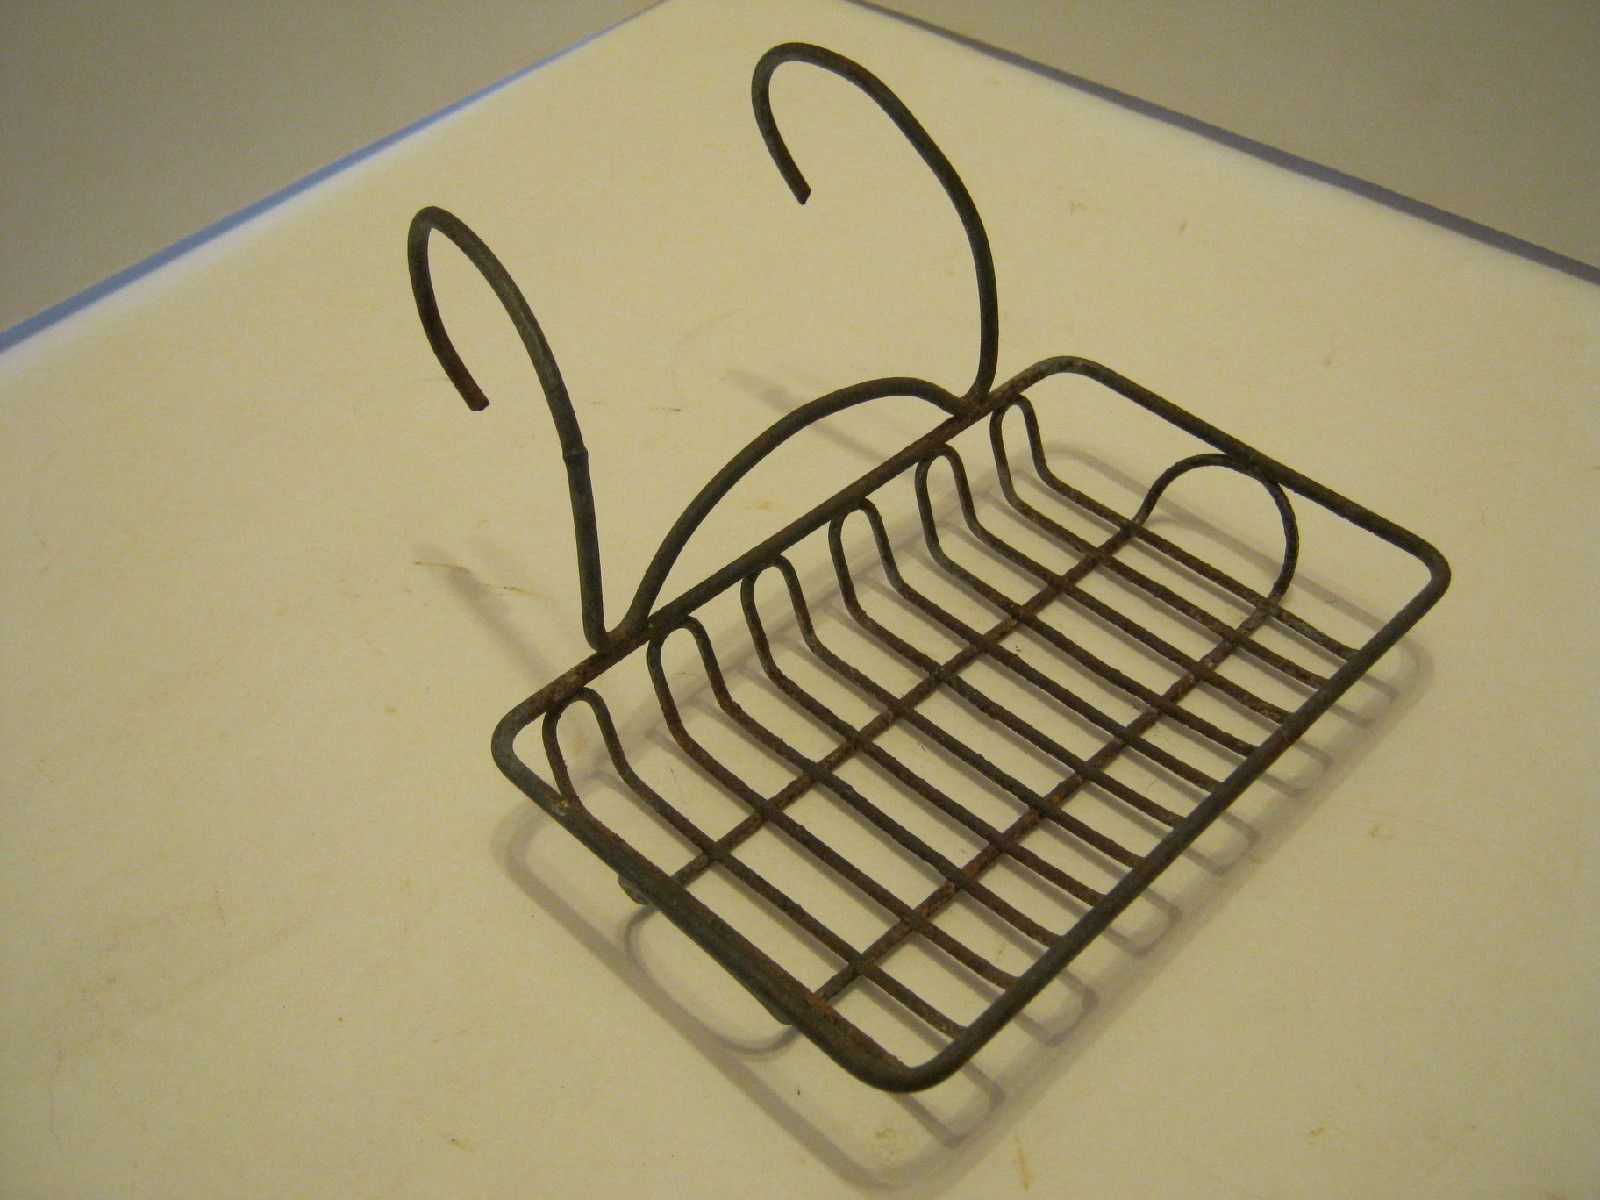 Antique Wire Soap Dish Holder For Farmhouse Sink Or Claw Foot Bath